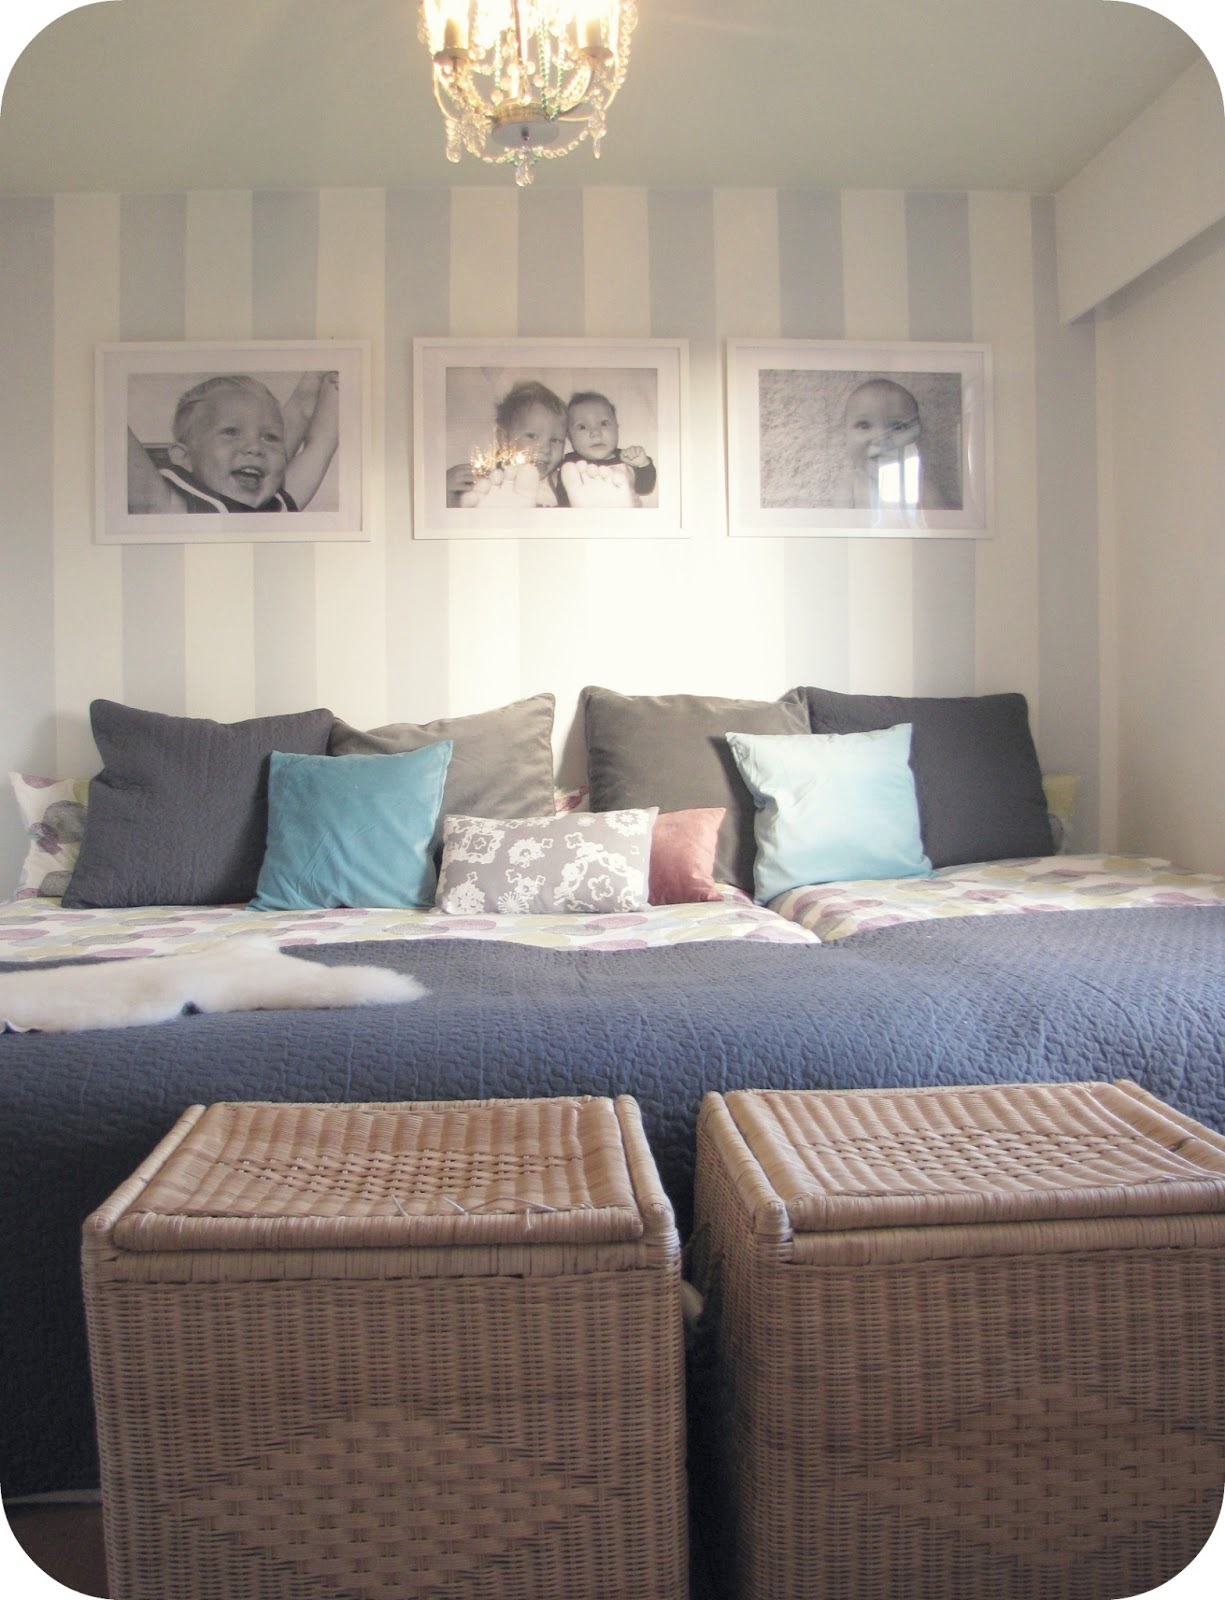 My House Of Giggles: One Giant Family Bed (if You Can't